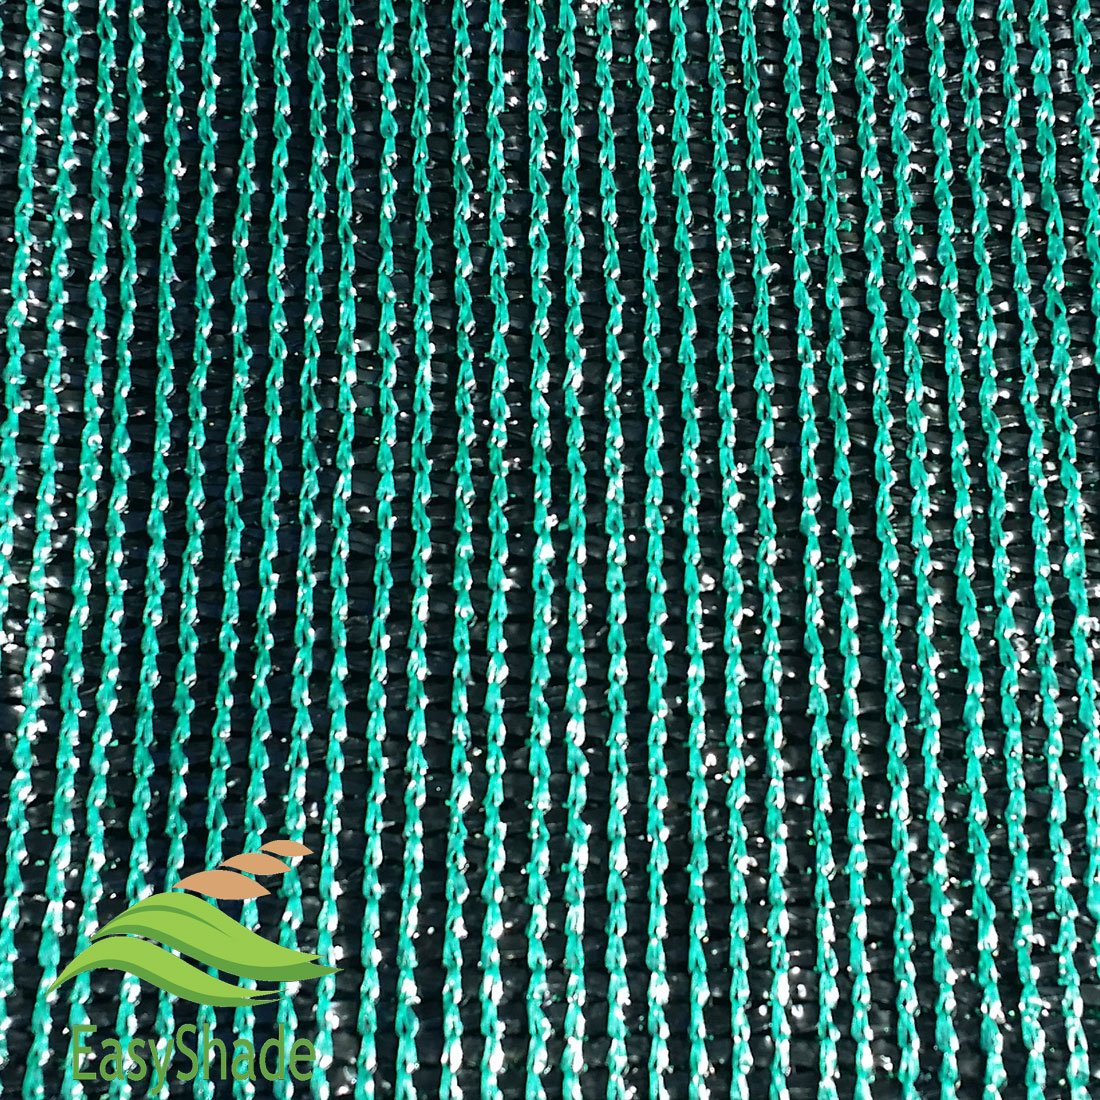 EasyShade Grn60 Sunblock Green 60% Shade Cloth UV Resistant Fabric 10ft x 10ft